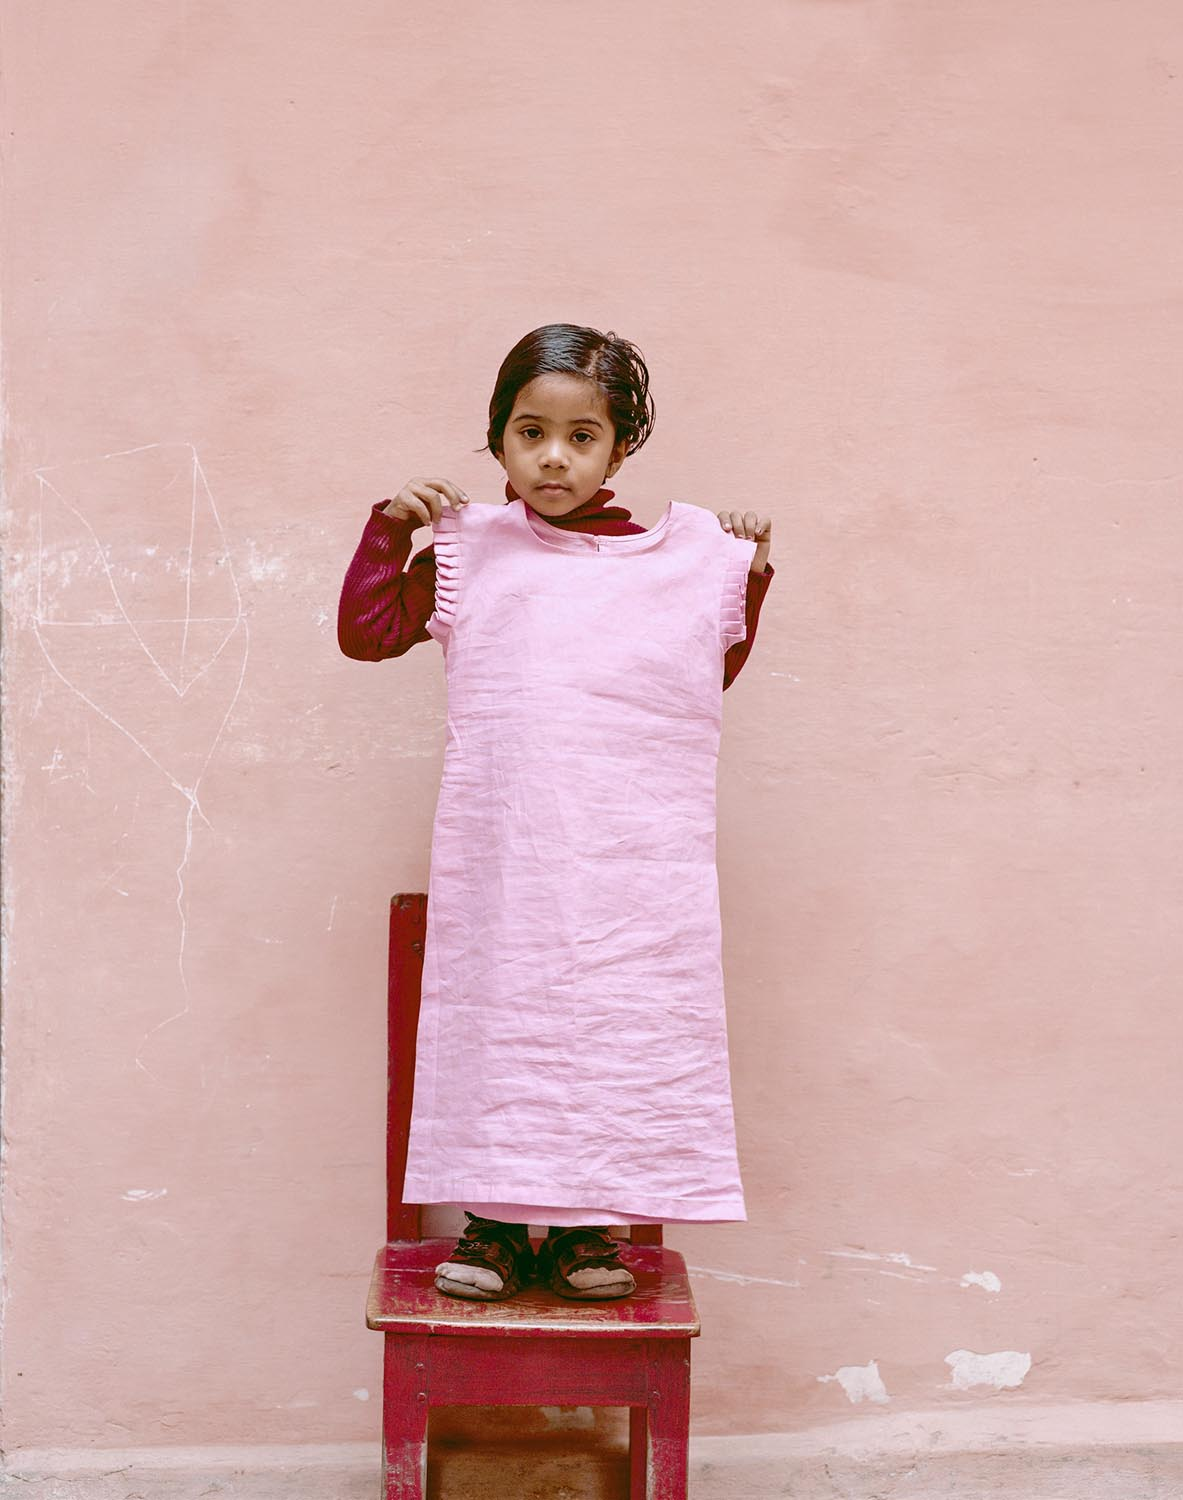 a-pink-dress-untitled-2-2012